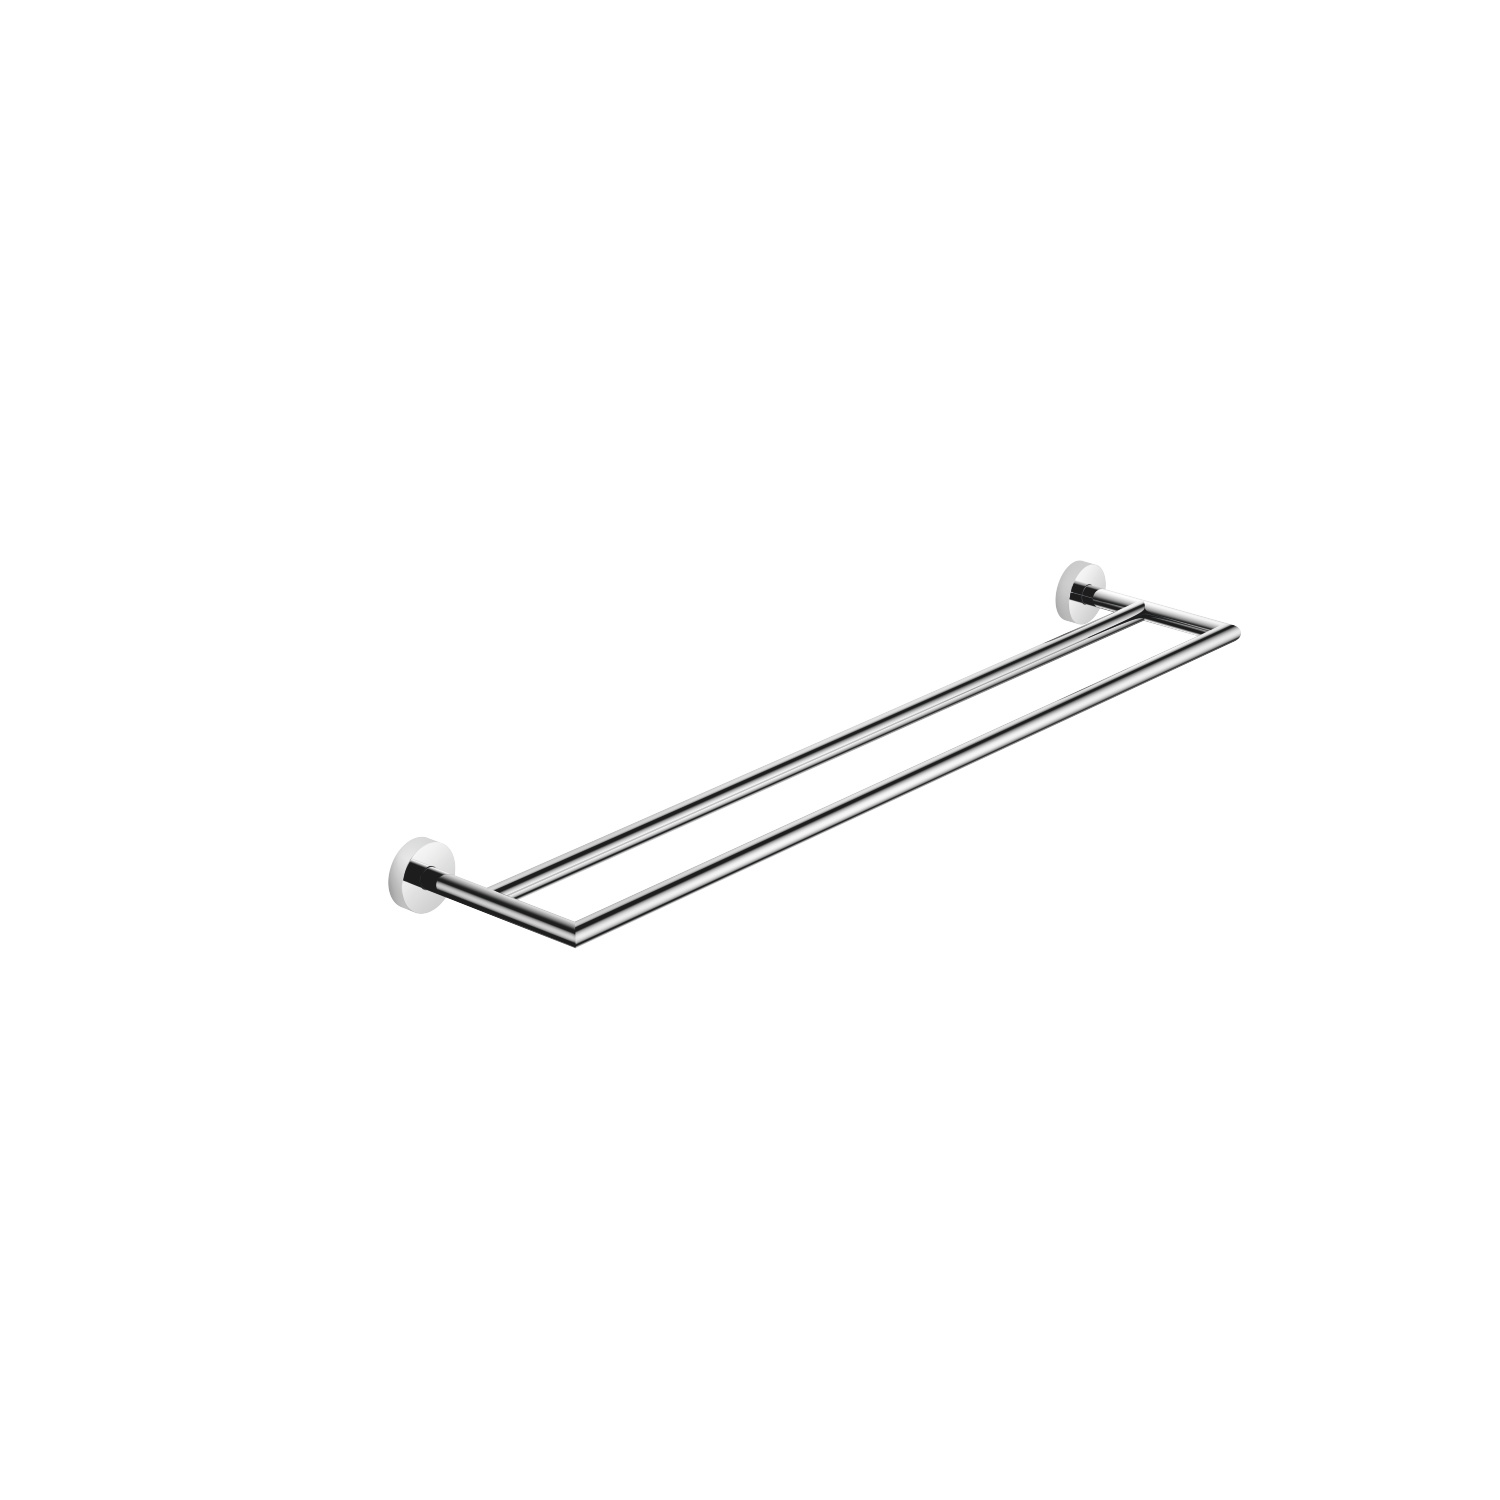 Towel bar two-piece - polished chrome - 83 061 979-00